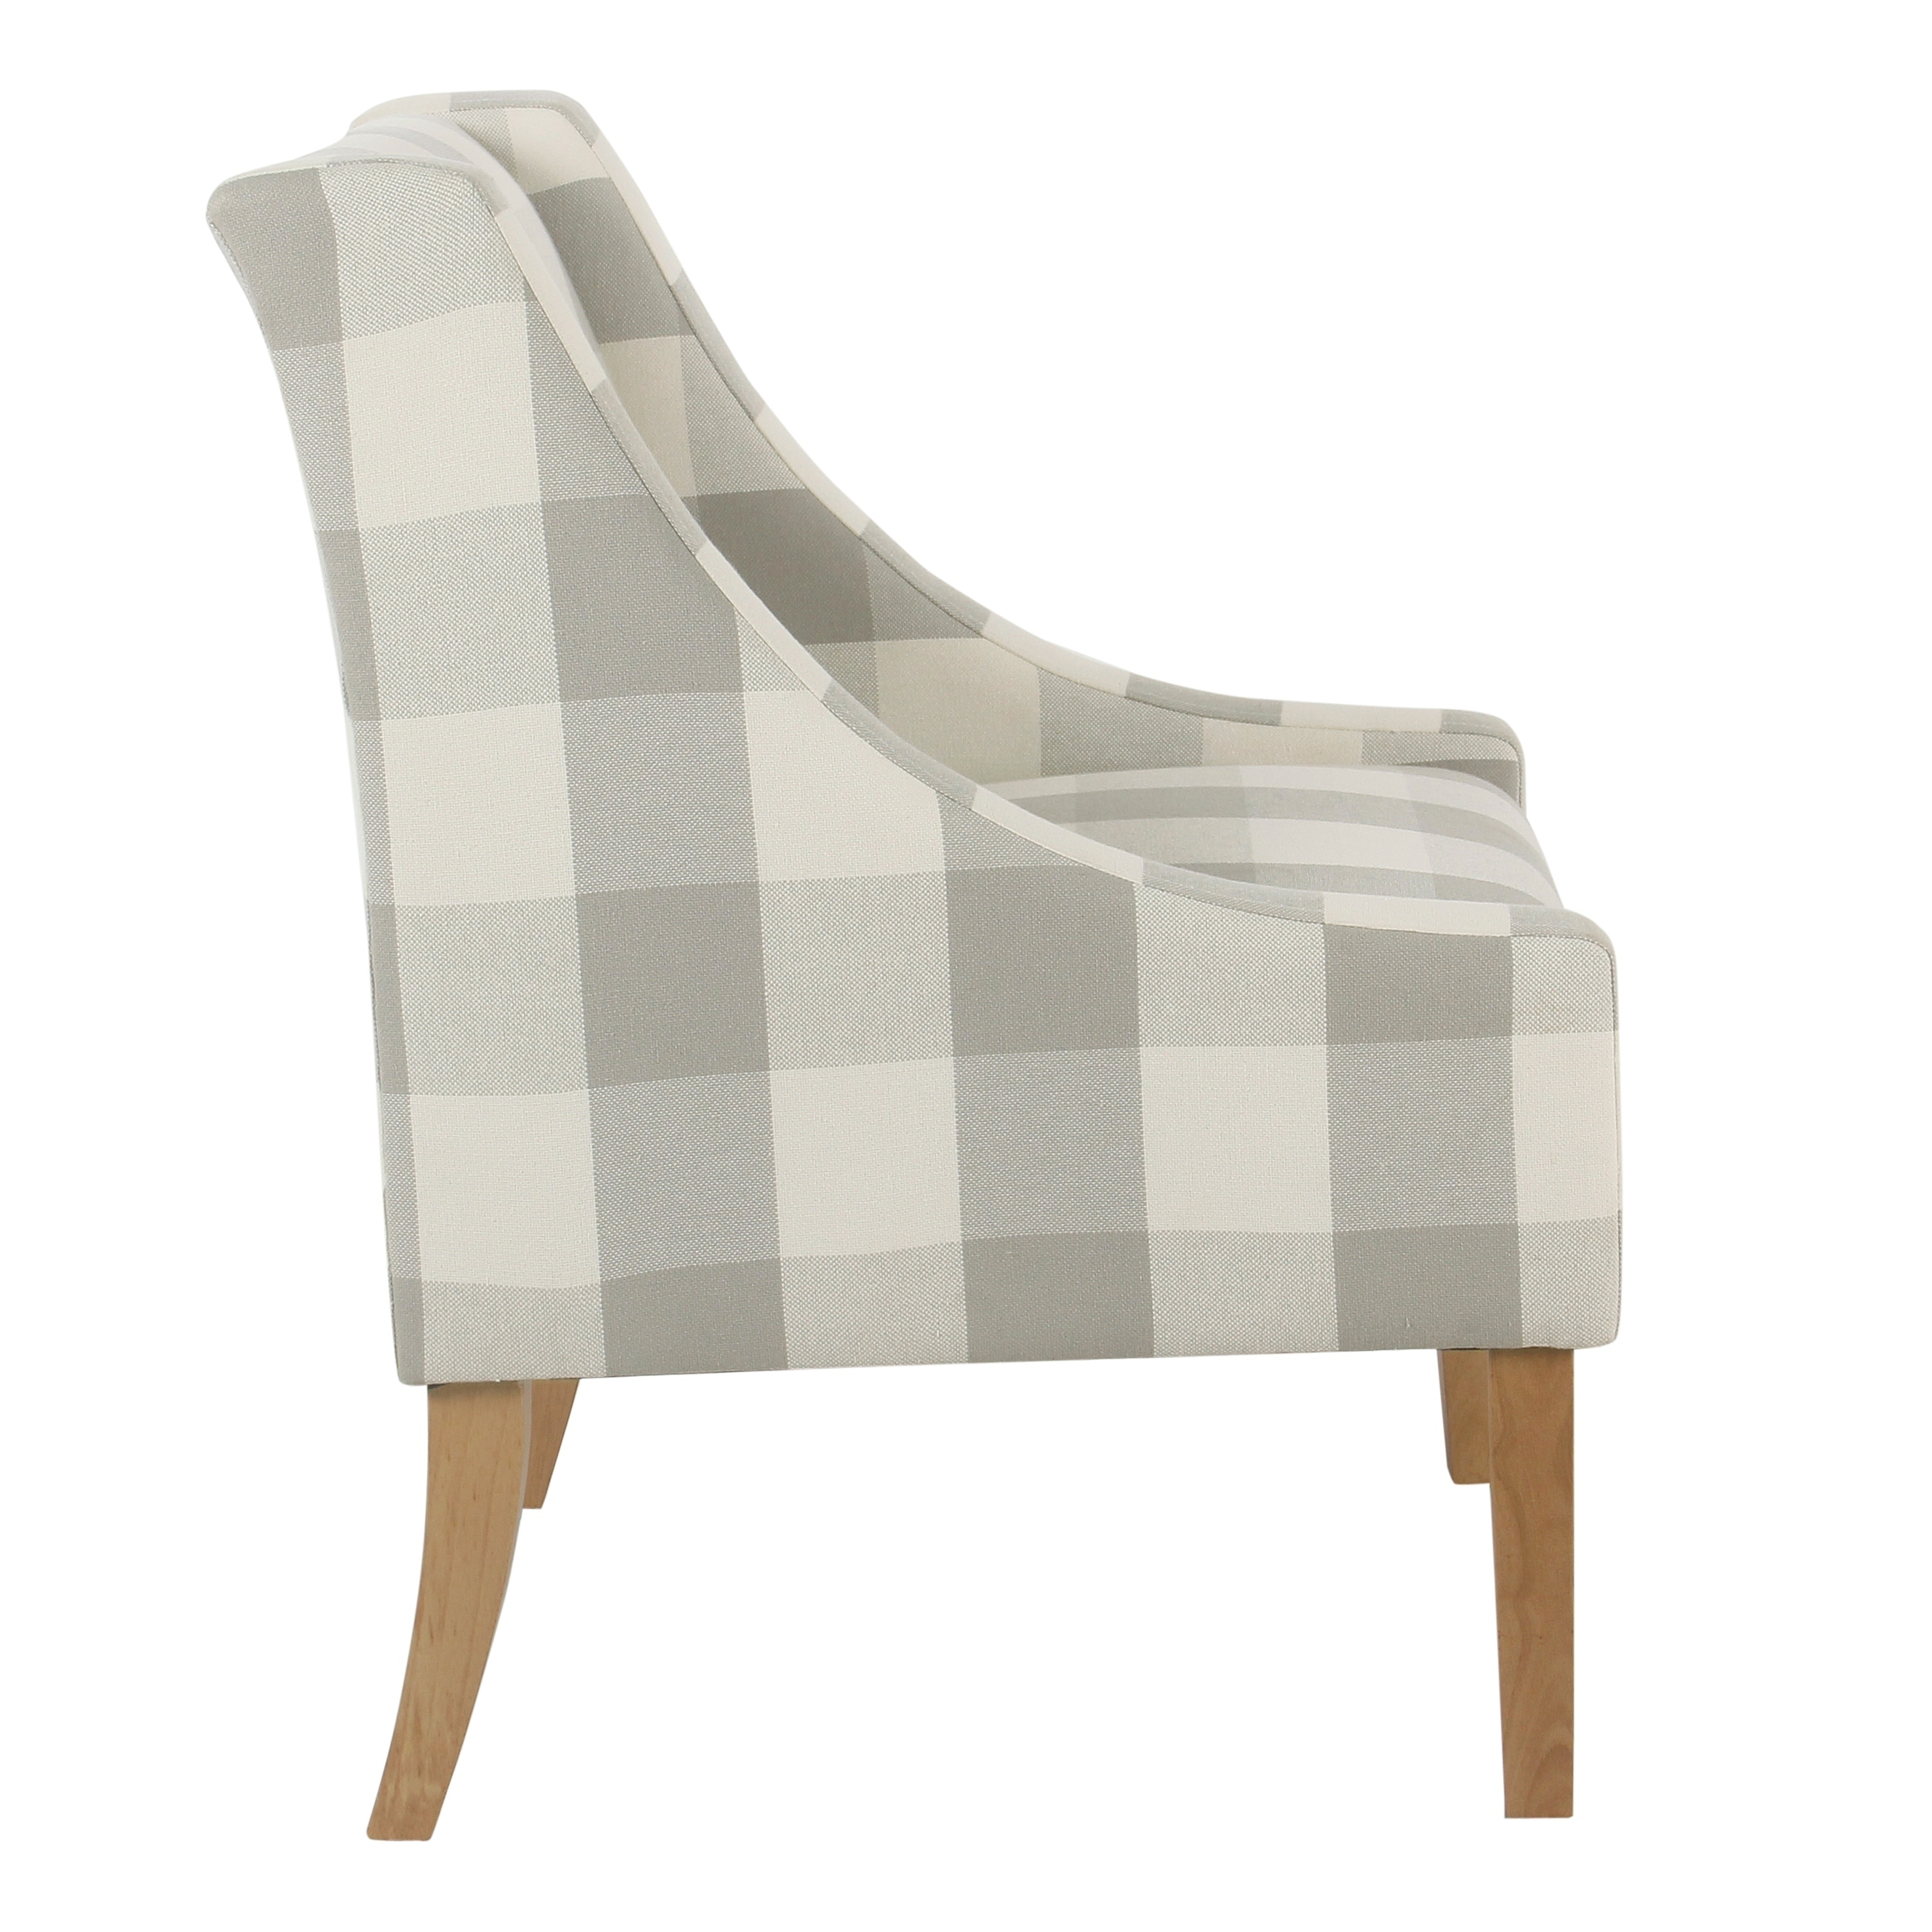 accent chairs gray pattern antique round corner chair shop copper grove gwillim modern swoop plaid